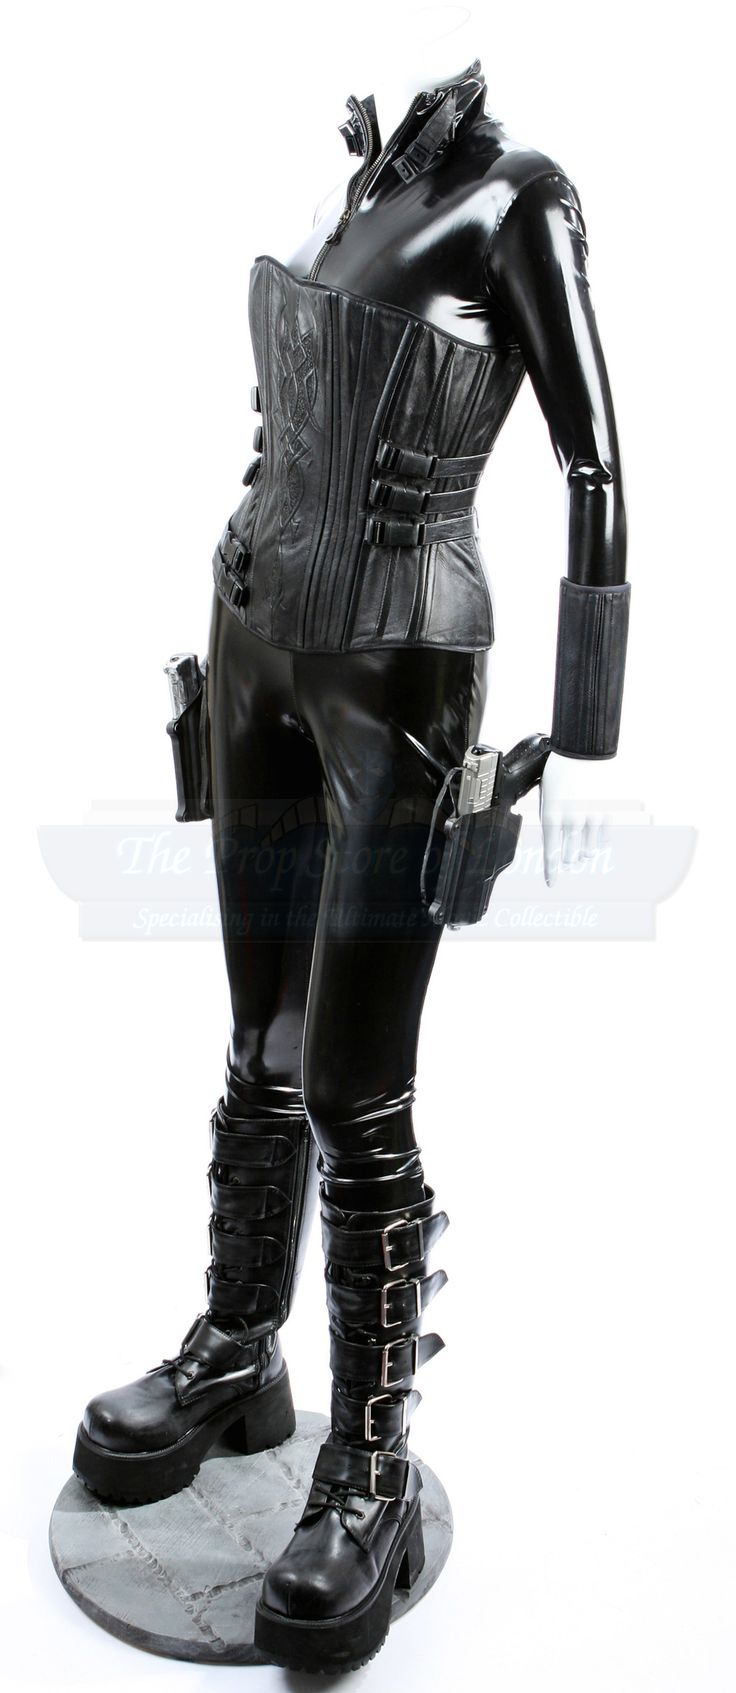 Skintight black bodysuit w zipper closure from the neck to lower torso. Also black leather zip-up arm gauntlets.   Black leather corset has lace-up back and double zipper. 8 leather straps extend around the side and clip to corset front.  2 black gun holsters attach to the outside of the upper thighs using small, high powered magnets.  The calf-high black leather platform boots have laces and zipper all the way up and 5 buckles.